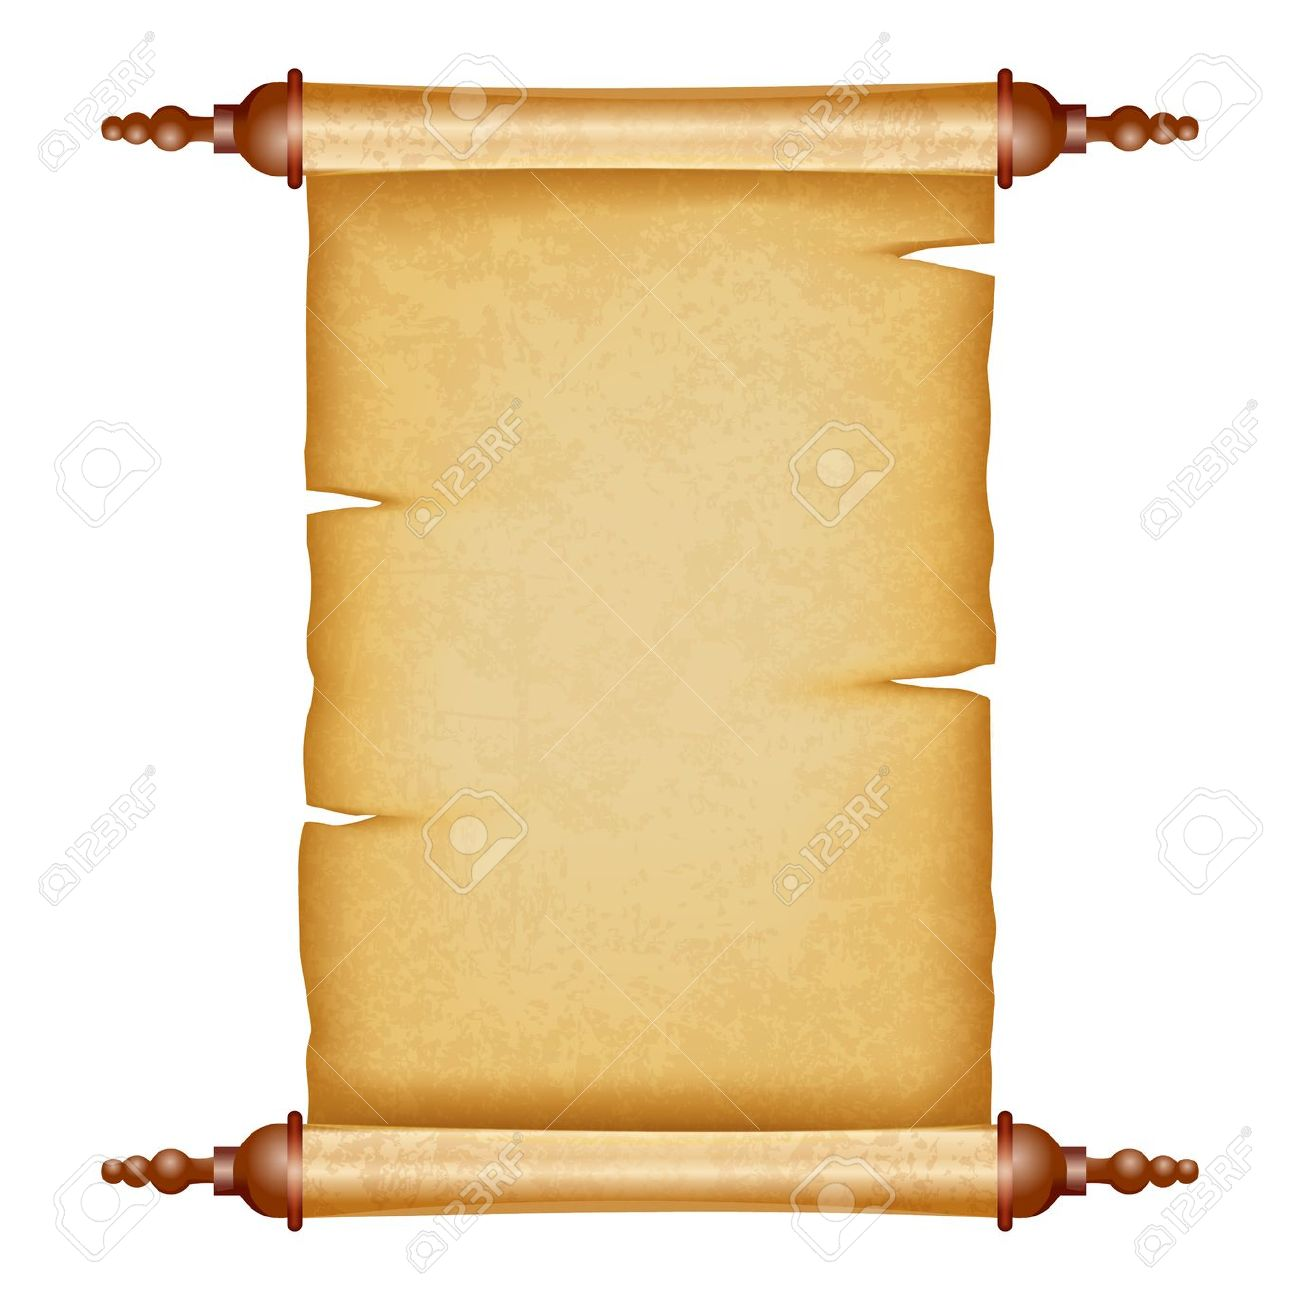 Parchment paper scroll clipart - Ancient Letter Roll PNG